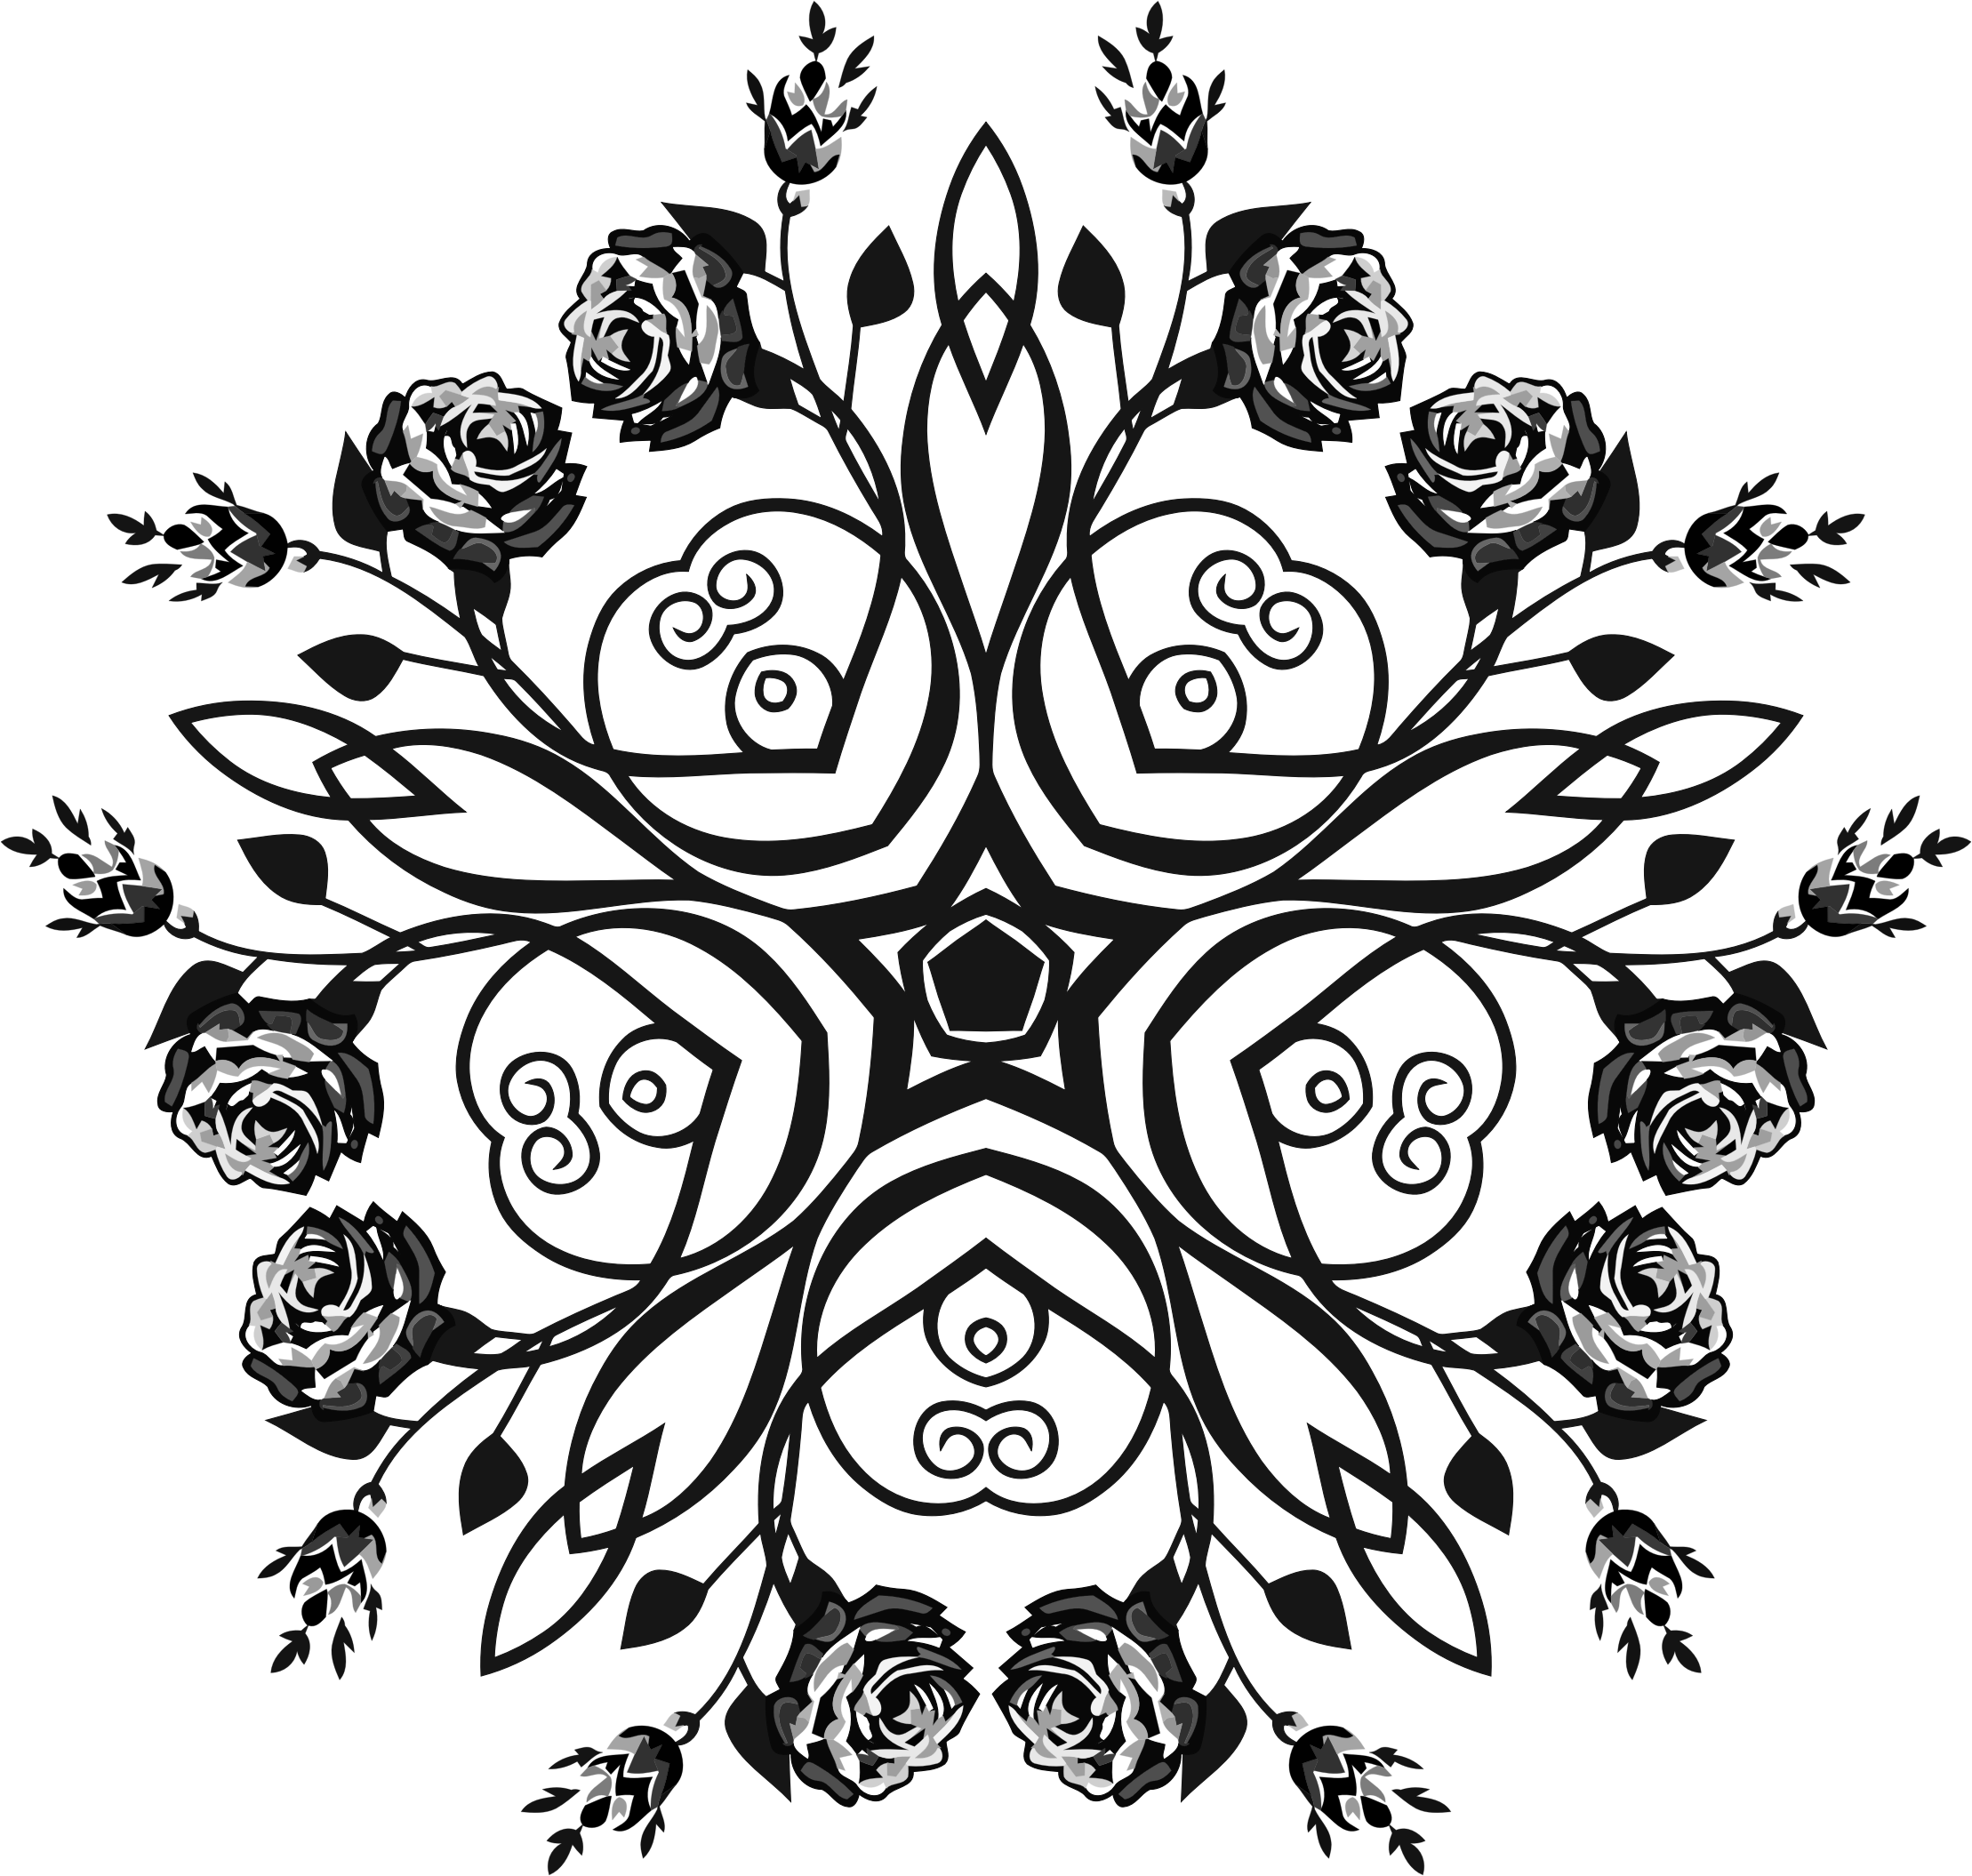 Rose Floral Flourish Design 5 by GDJ